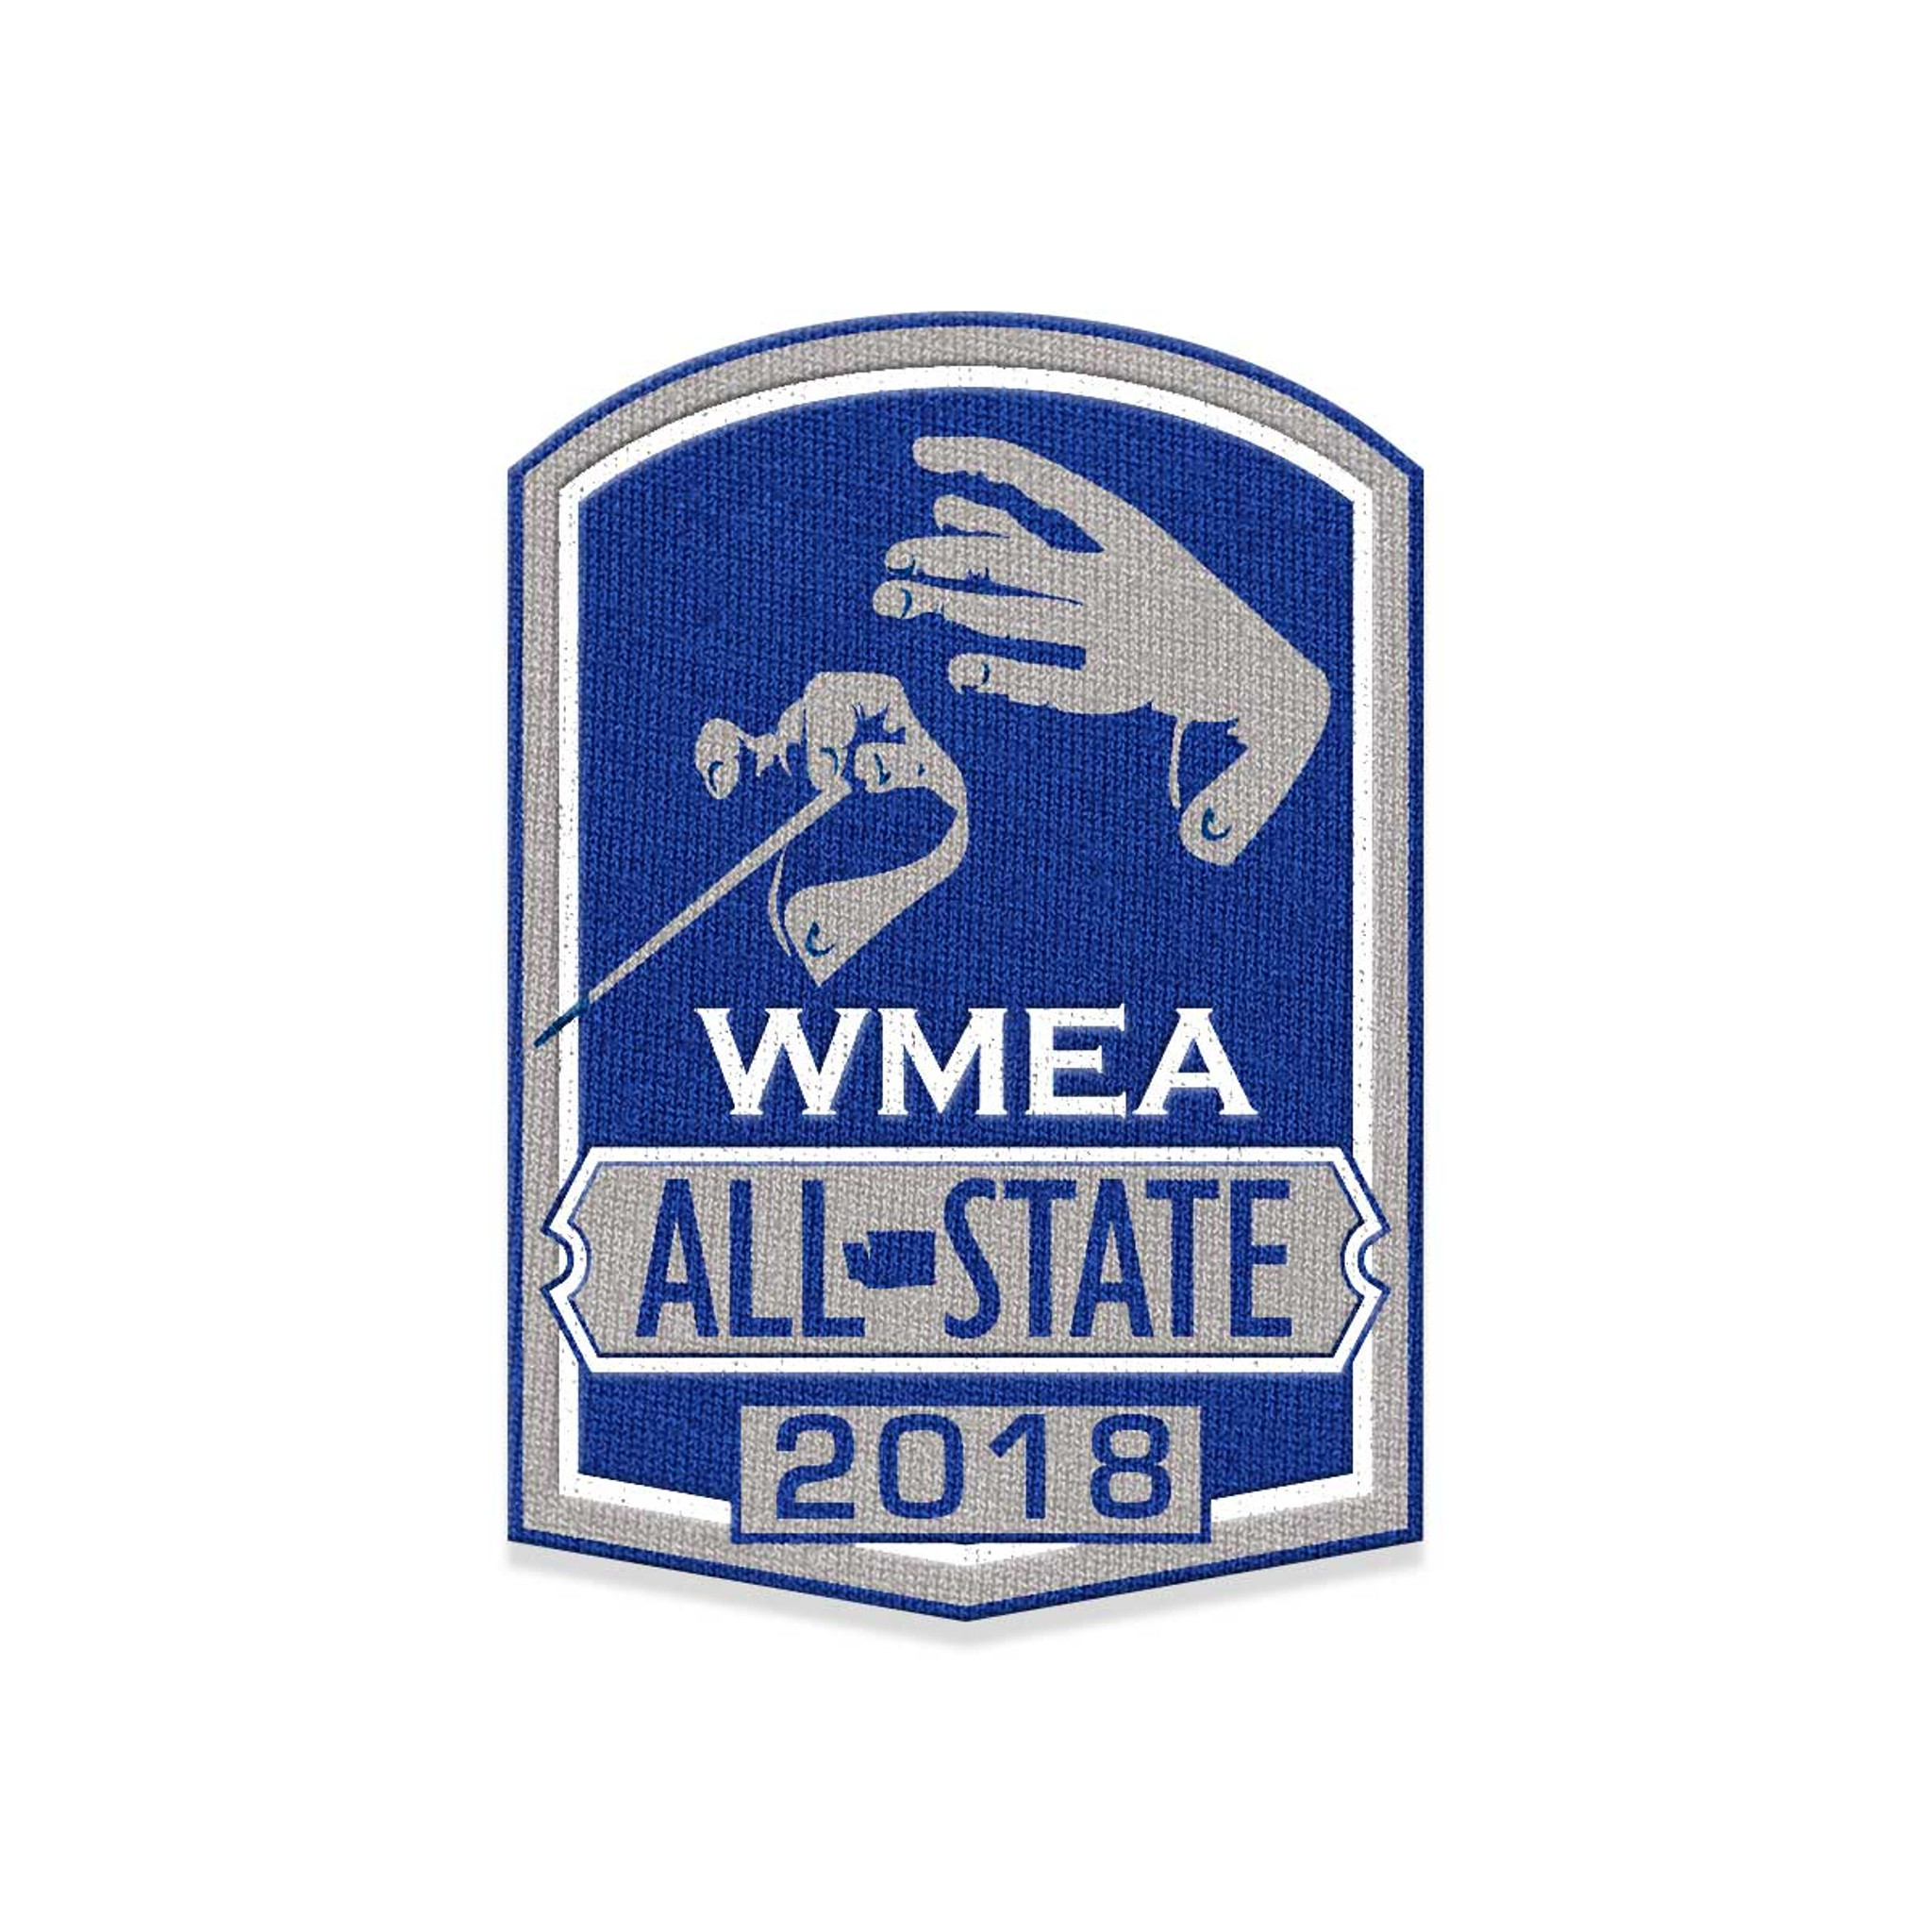 2018 WMEA All-State Event Patch